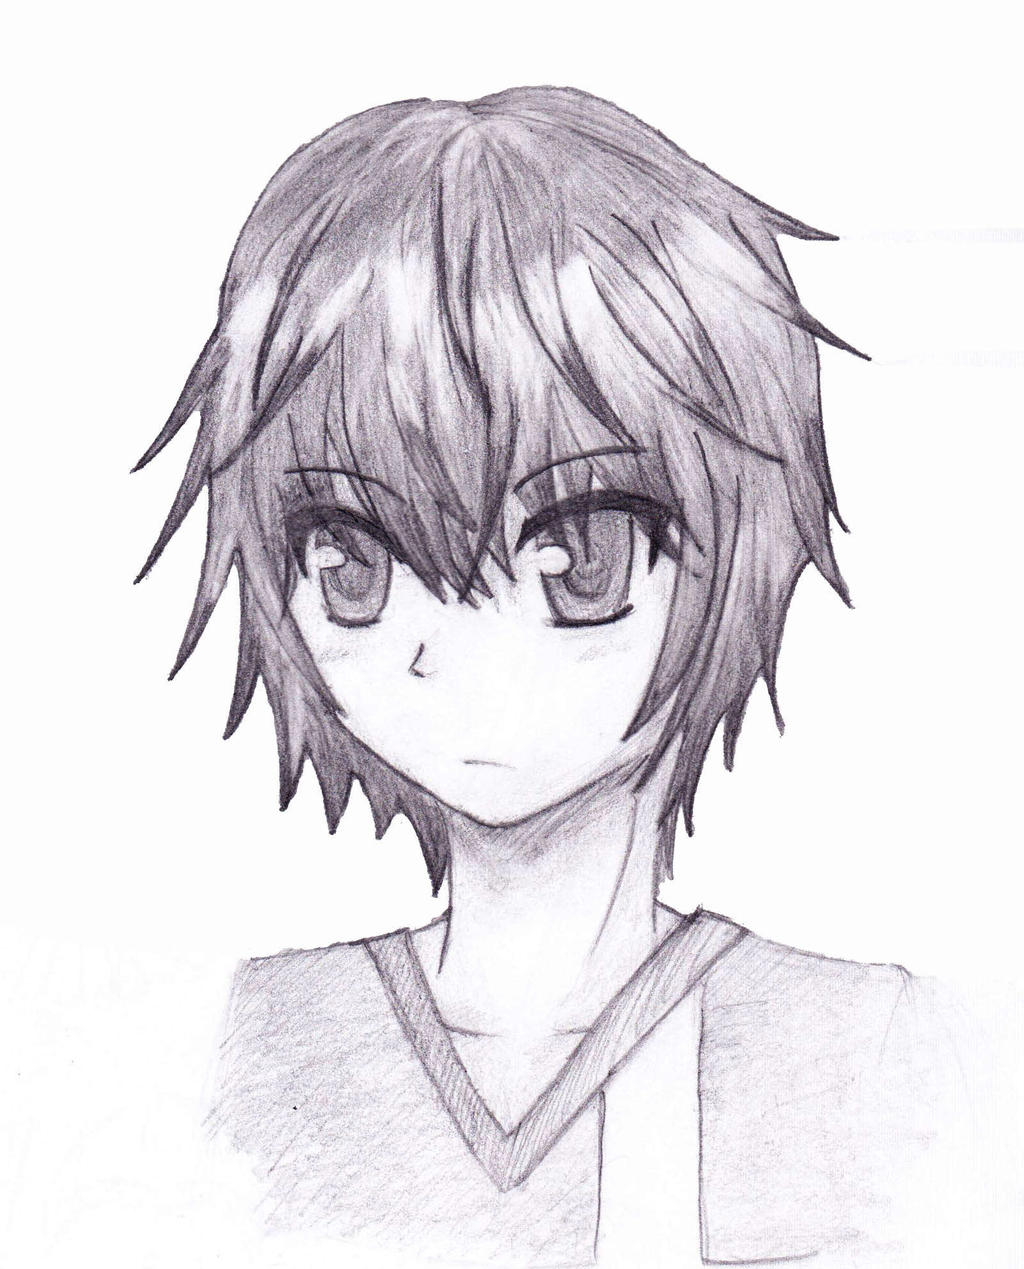 Sketch Anime Boy By Blazing Skies On Deviantart Boy And Anime Drawing